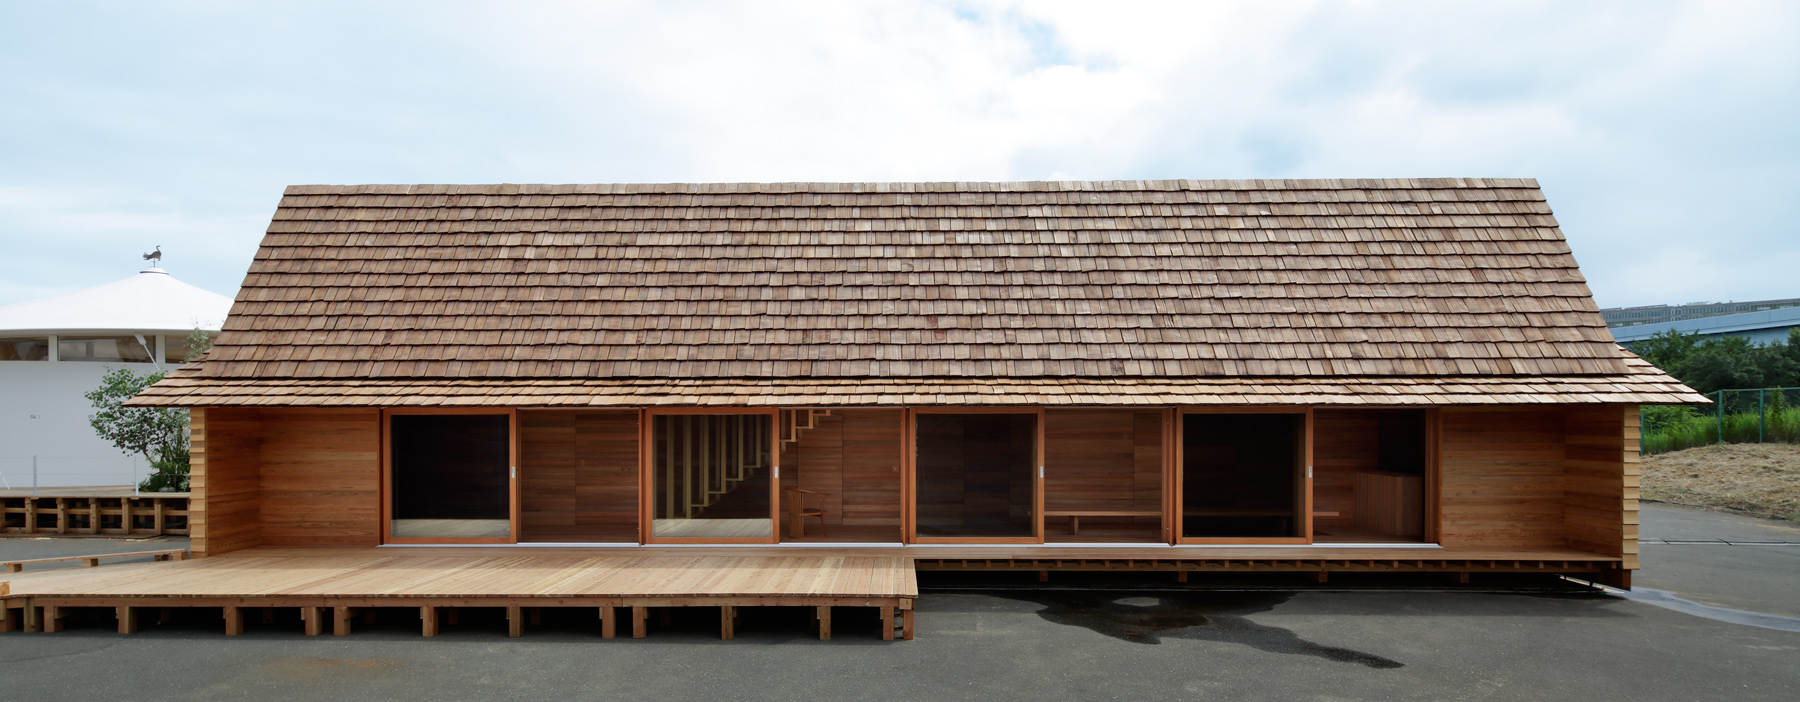 house vision airbnb go hasegawa (3)